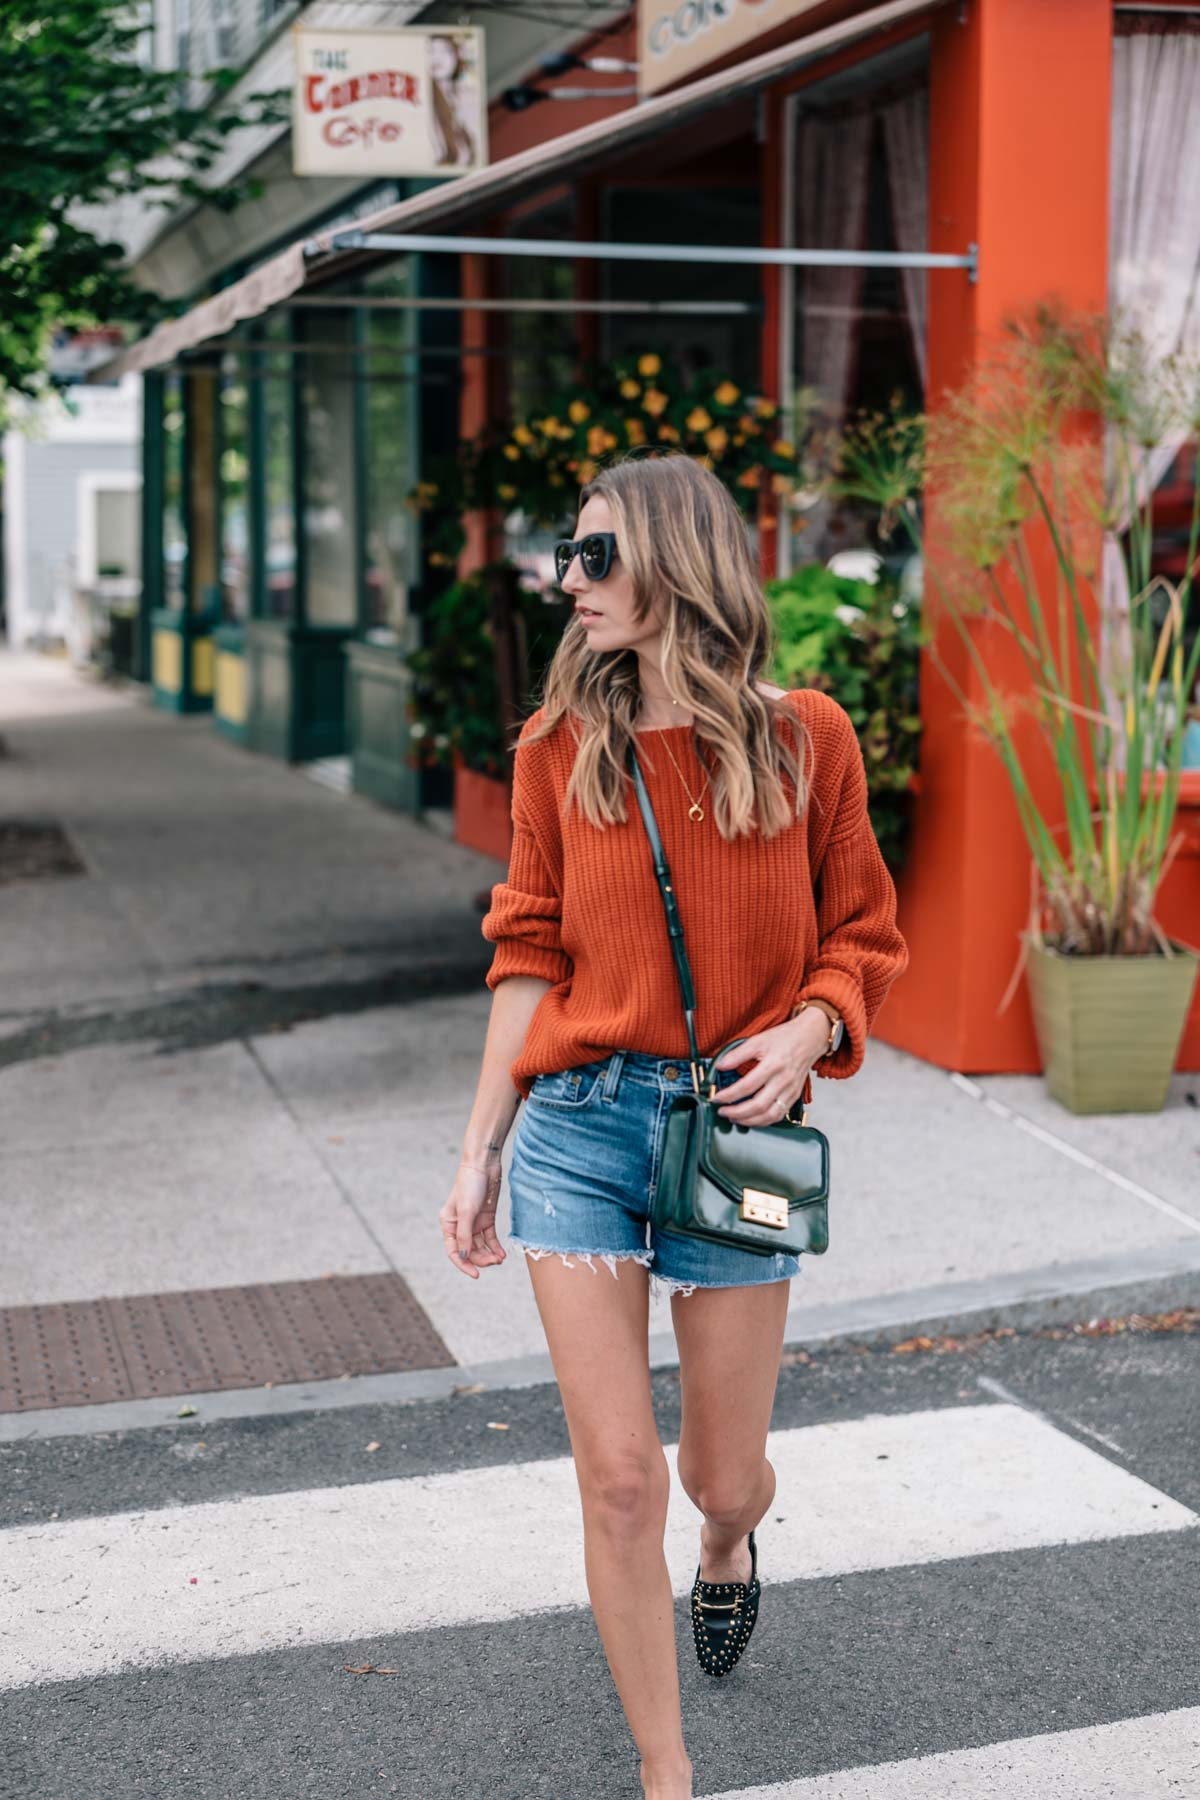 Jess Ann Kirby fall color trend street style in a chunky knit sweater, jean shorts, and slides